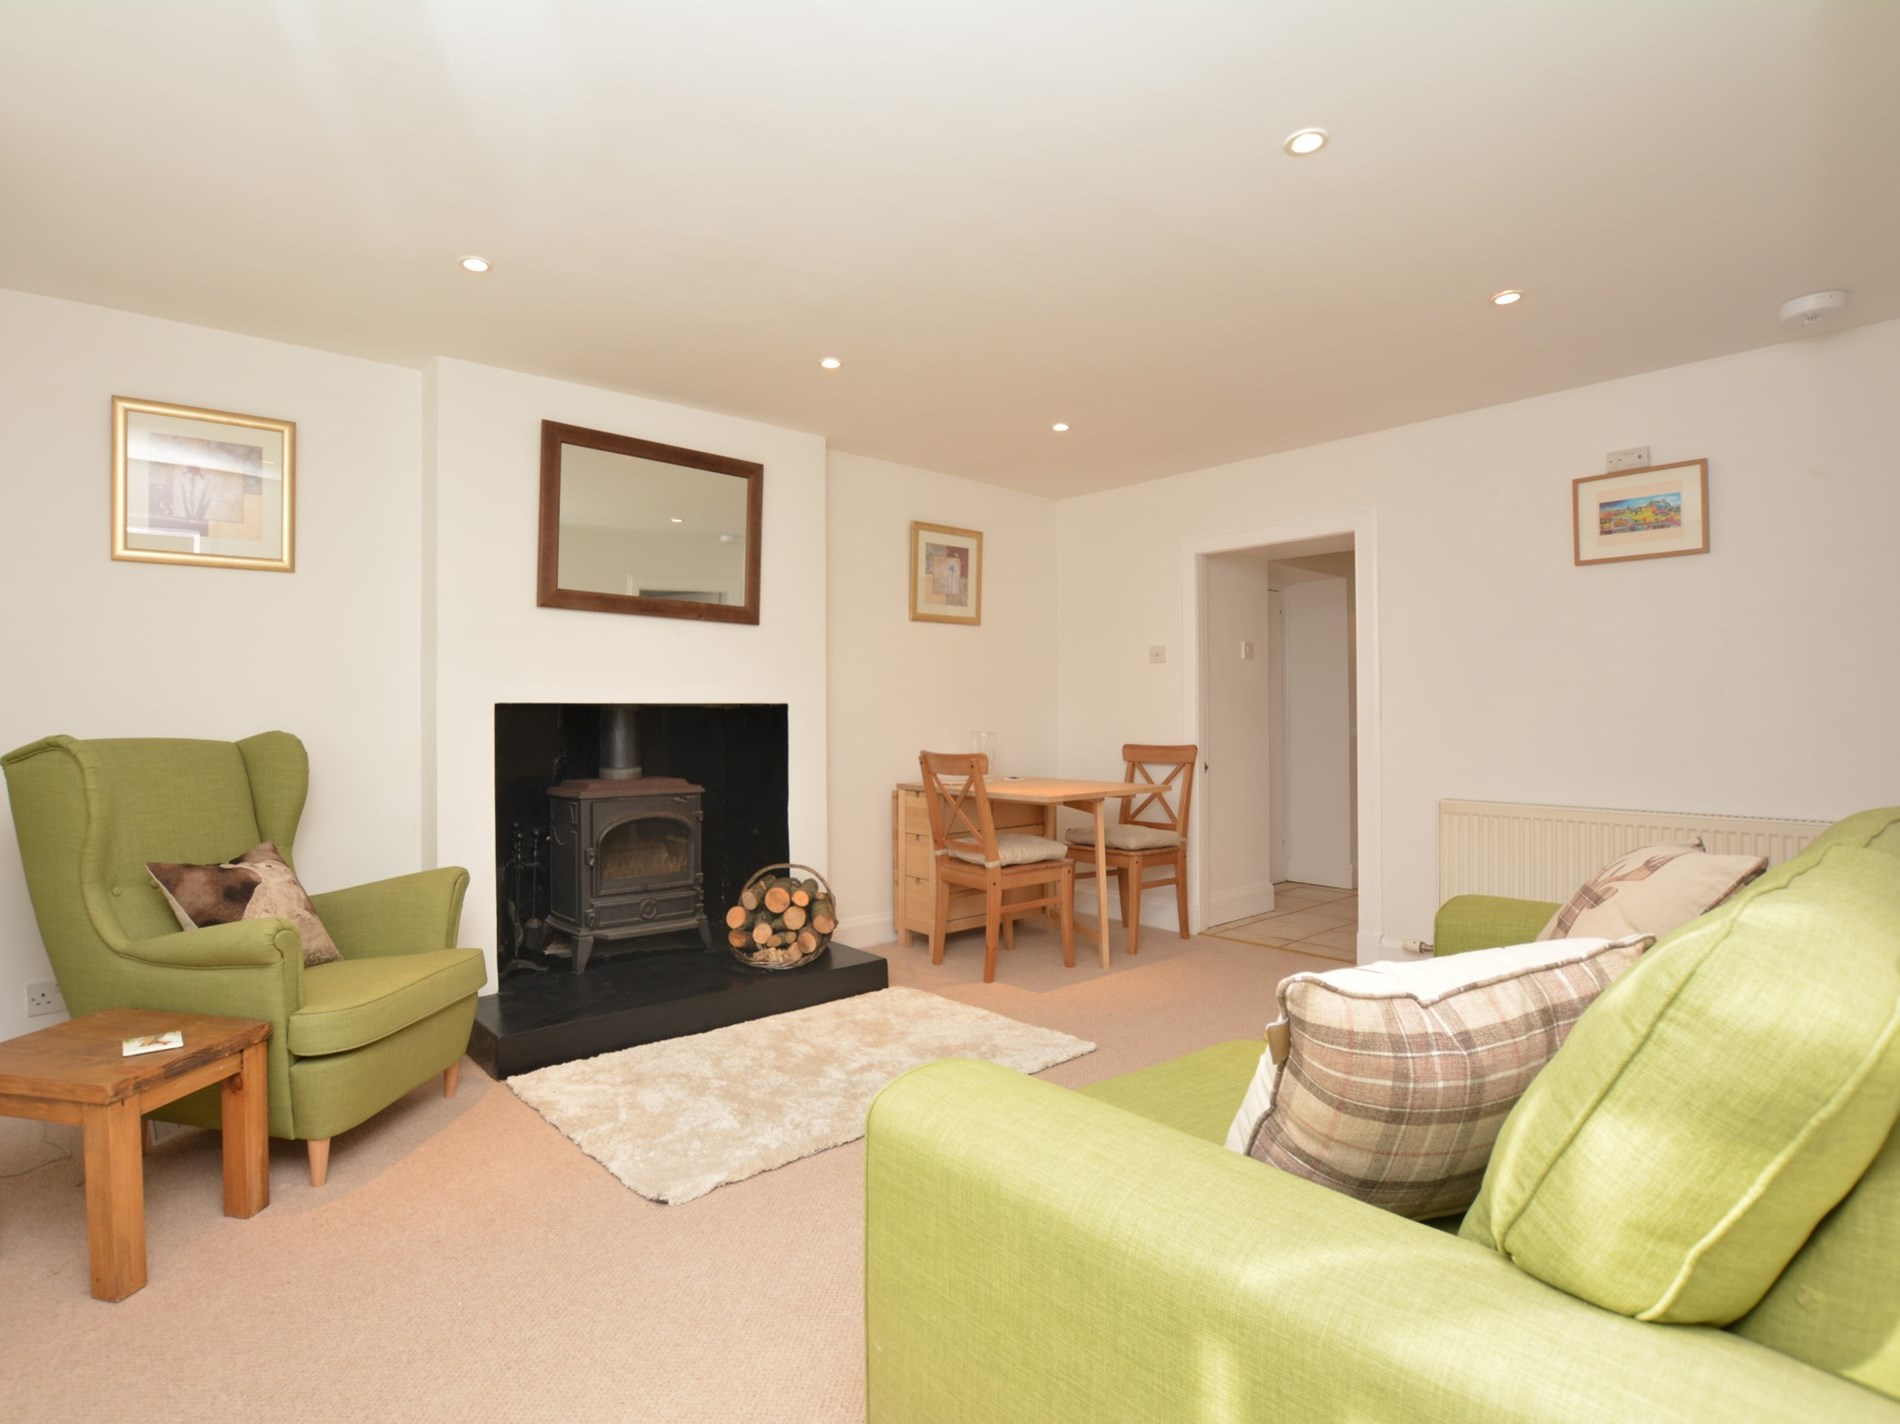 2 Bedroom Cottage in Laurencekirk, Perthshire, Angus & Fife